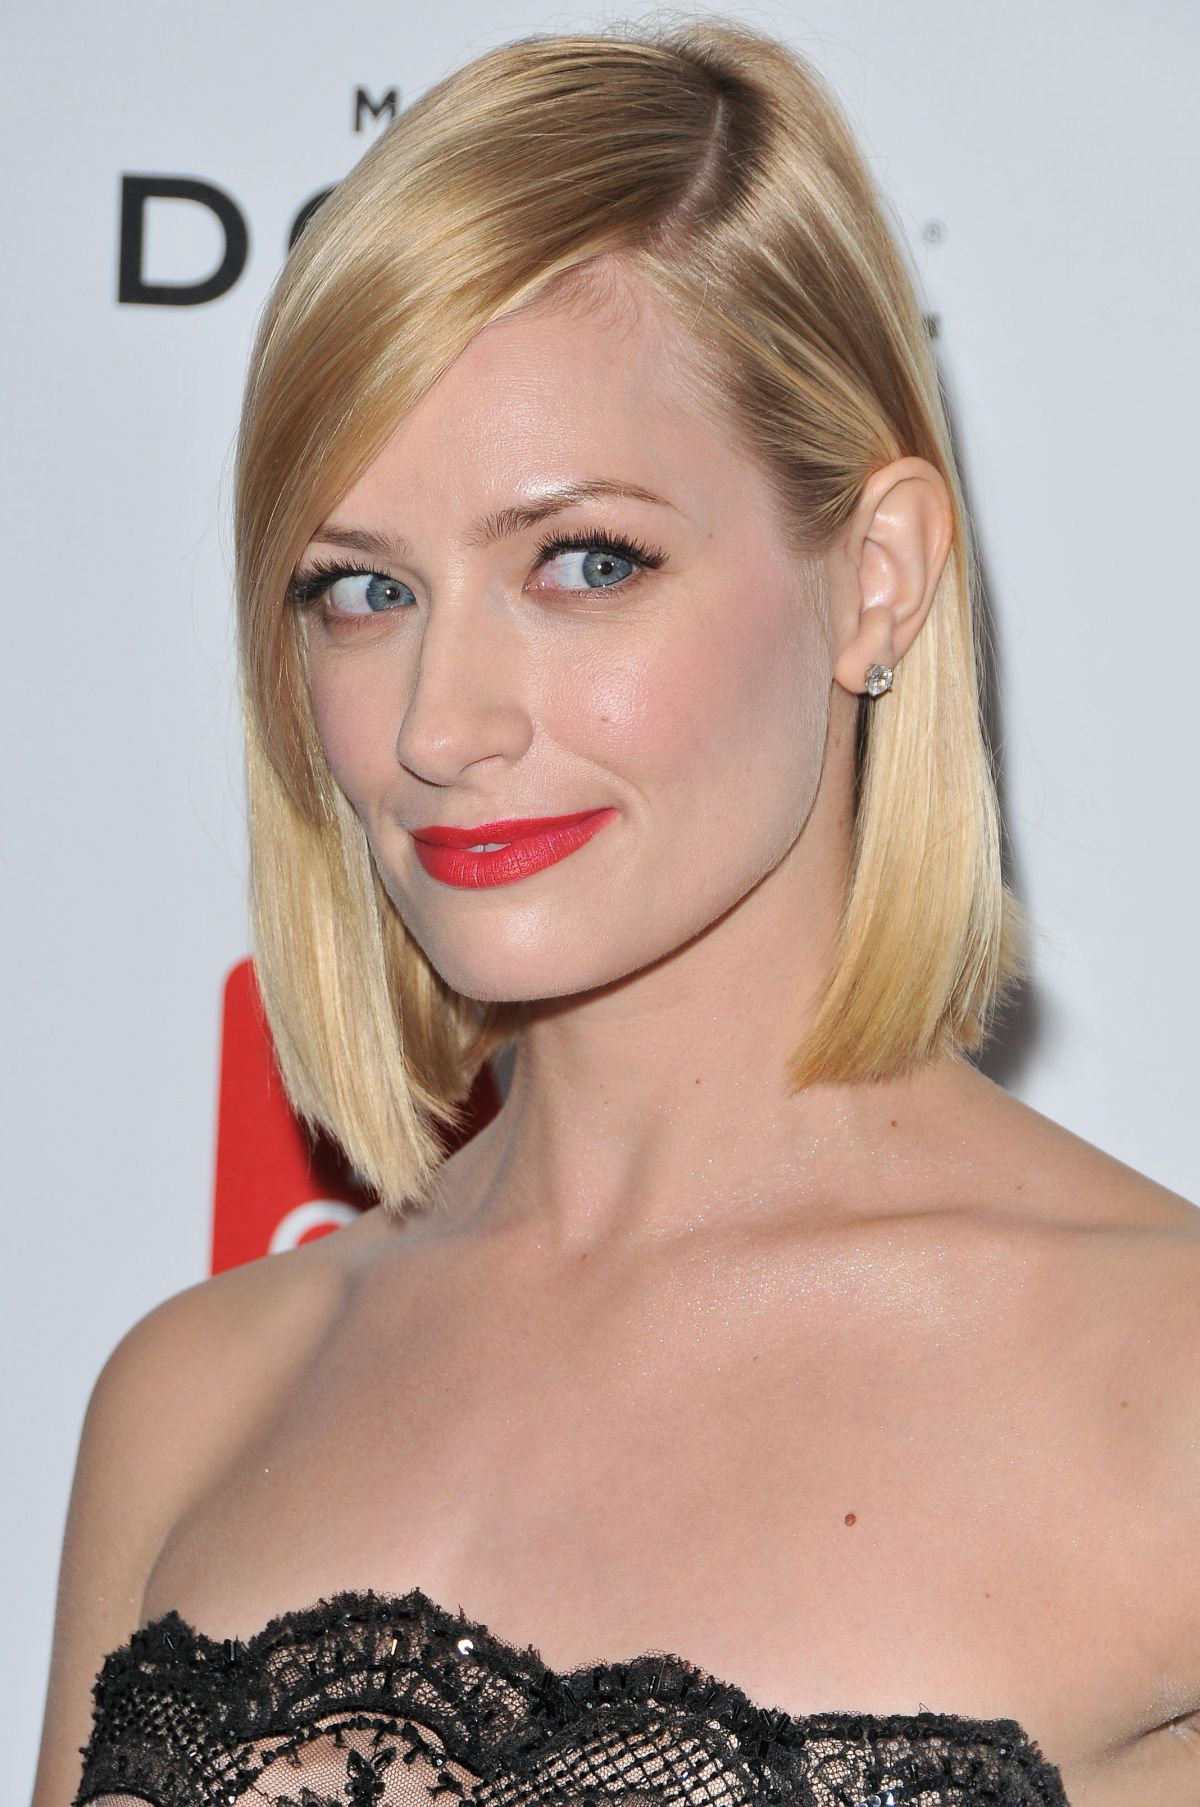 BETH BEHRS at 2012 CBS Upfront in New York - HawtCelebs